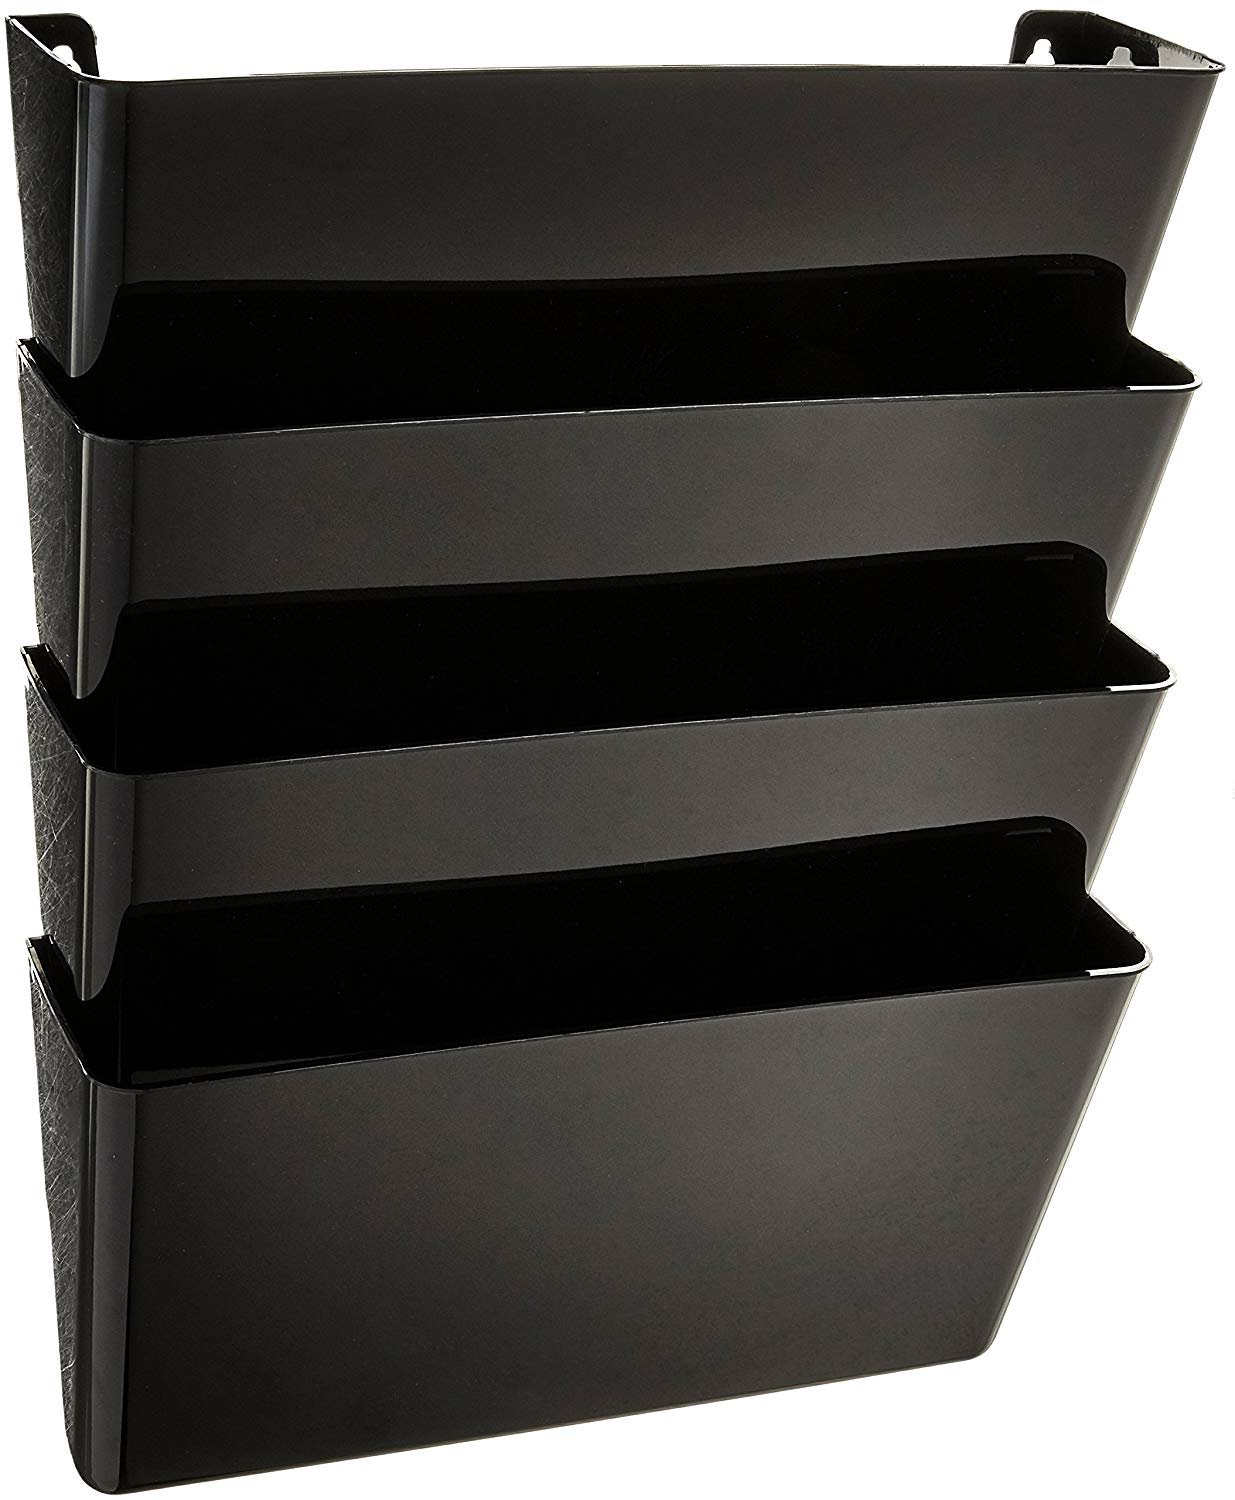 1InTheHome Expandable Wall Wall File Organizer, Letter-Sized,''7 Pocket, Black''